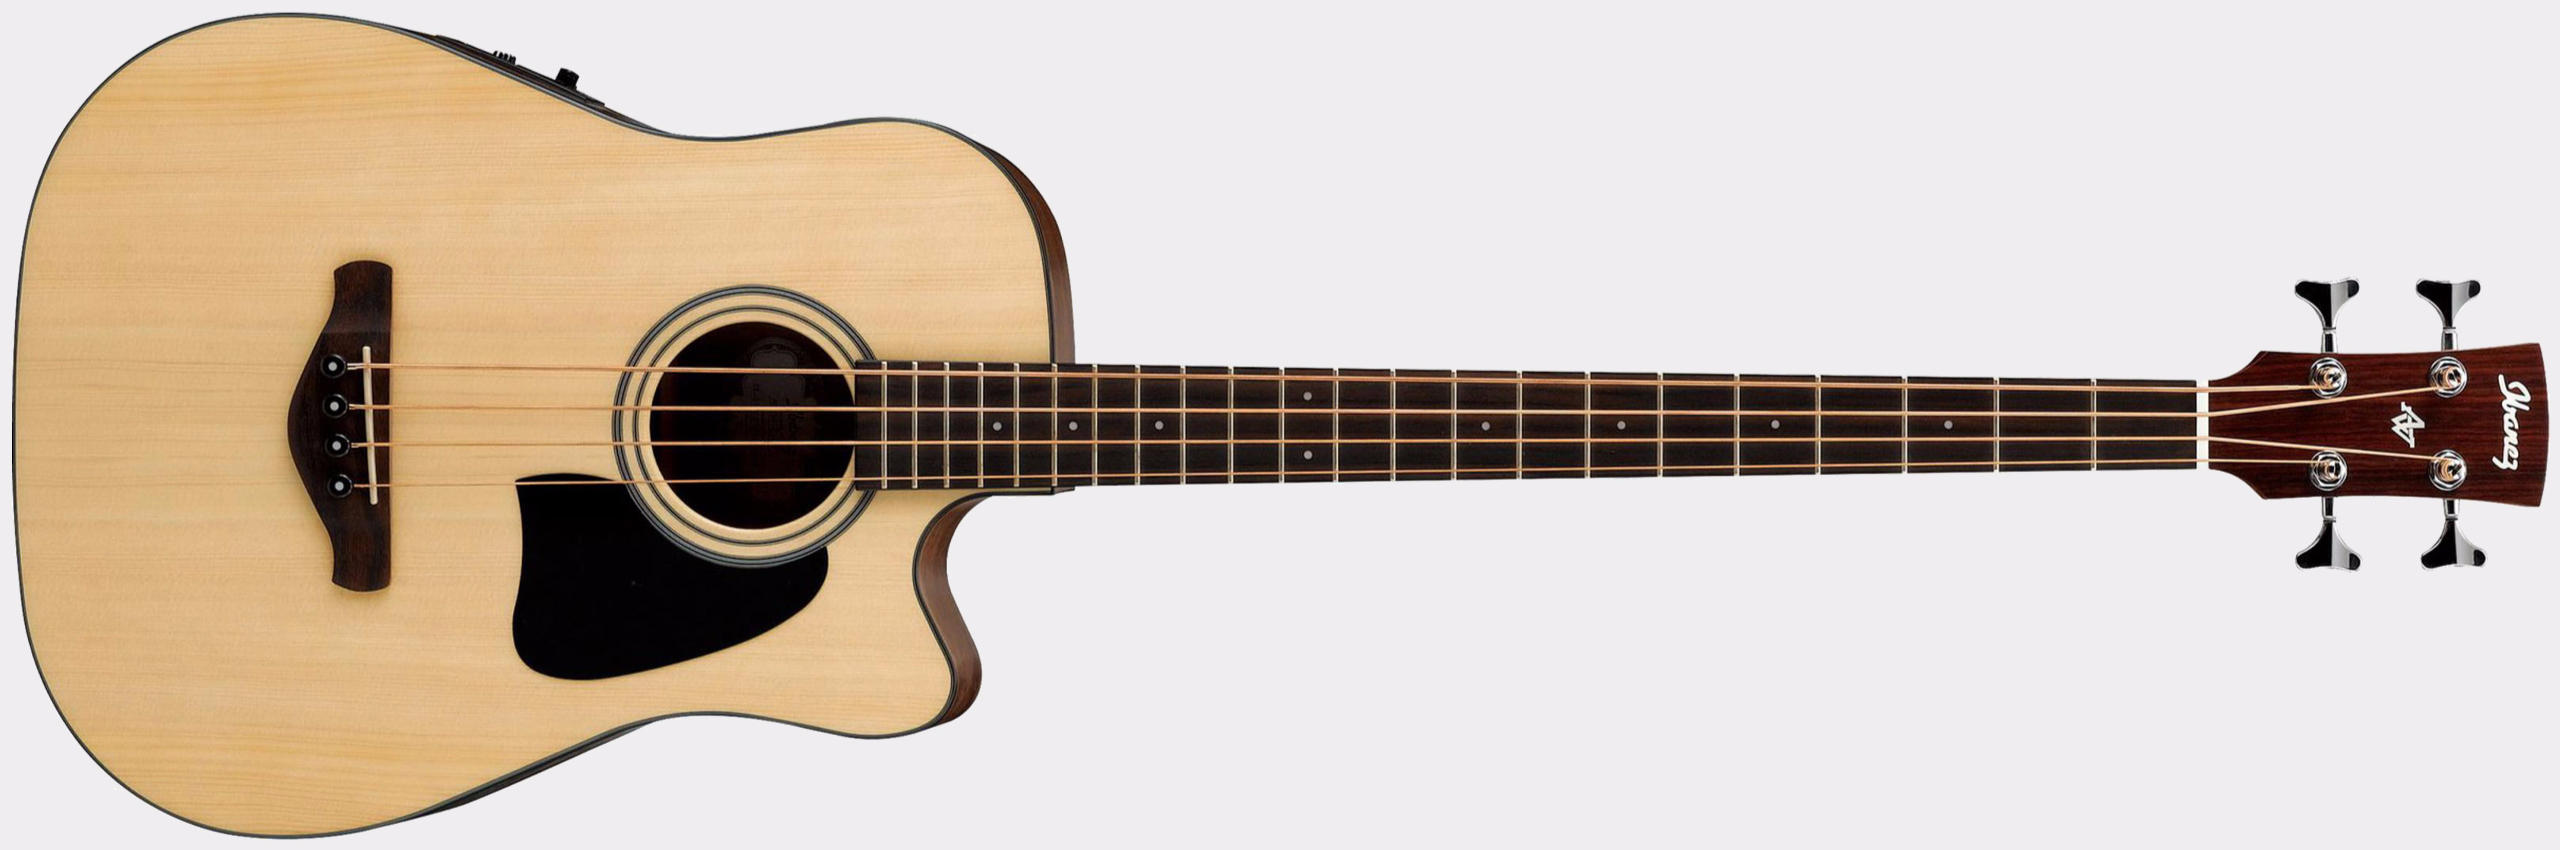 Ibanez AWB50CE-LG Natural Low Gloss